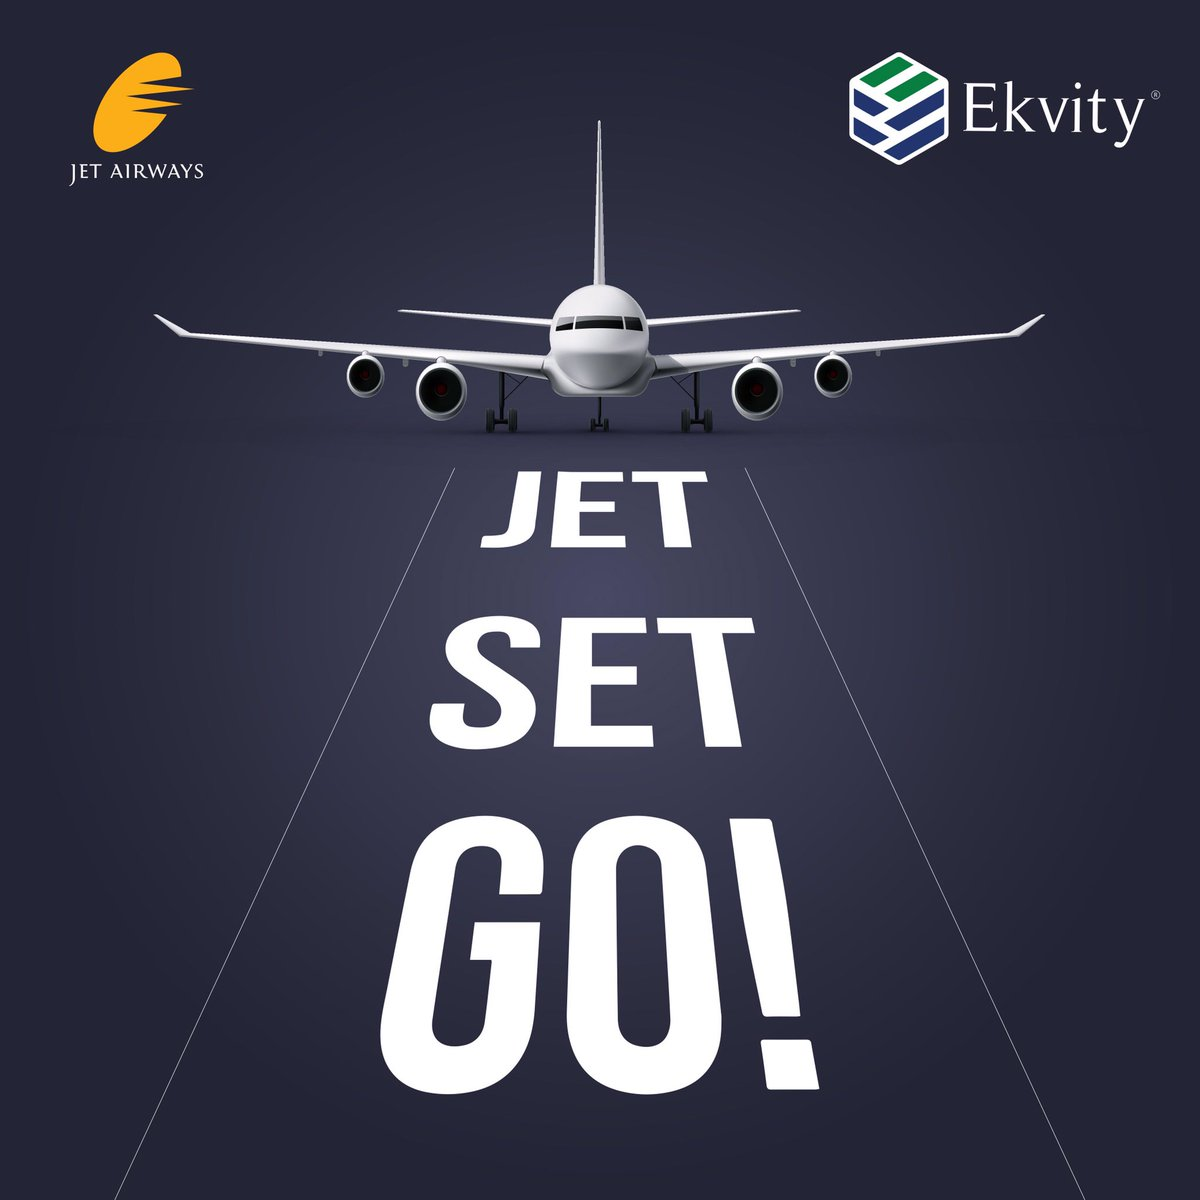 Jet is Set to take a Flight! ✈️  #JetAirways may soon will be On Air and is expected to fly again from #NewYear 2021, according to some news reports.  Read the information on the images to know the journey of Jet Airways.  #Jet #Ekvity #JetAirwaysRevival #JoyOfFlying #Aviation https://t.co/yvO2ou8fYY